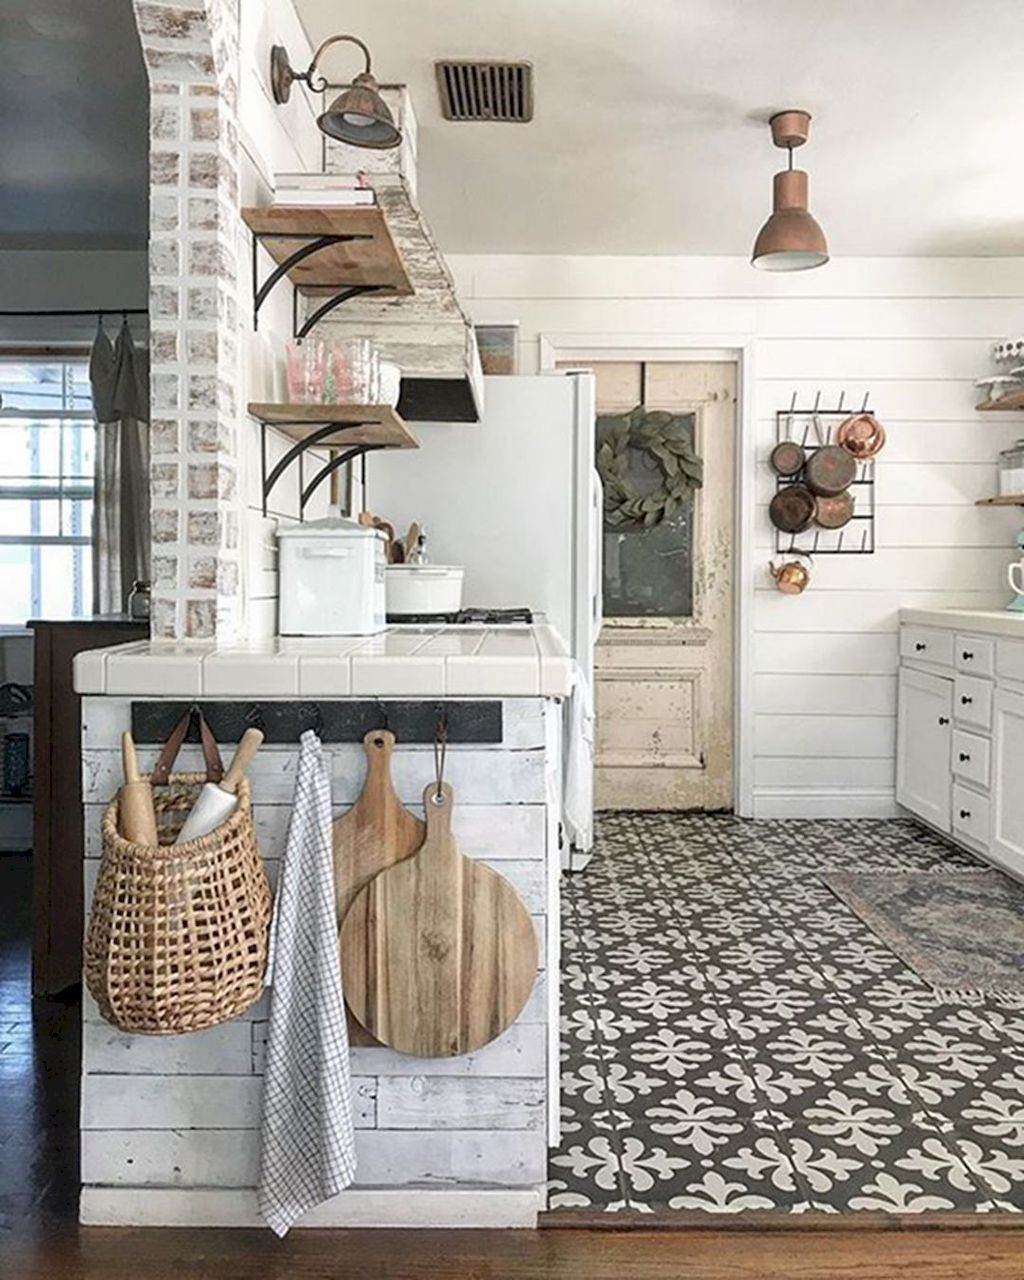 34 Awesome Rustic Kitchen Decor Ideas With Farmhouse Style Farmhouse Kitchen Decor Home Decor Kitchen Farmhouse Kitchen Design